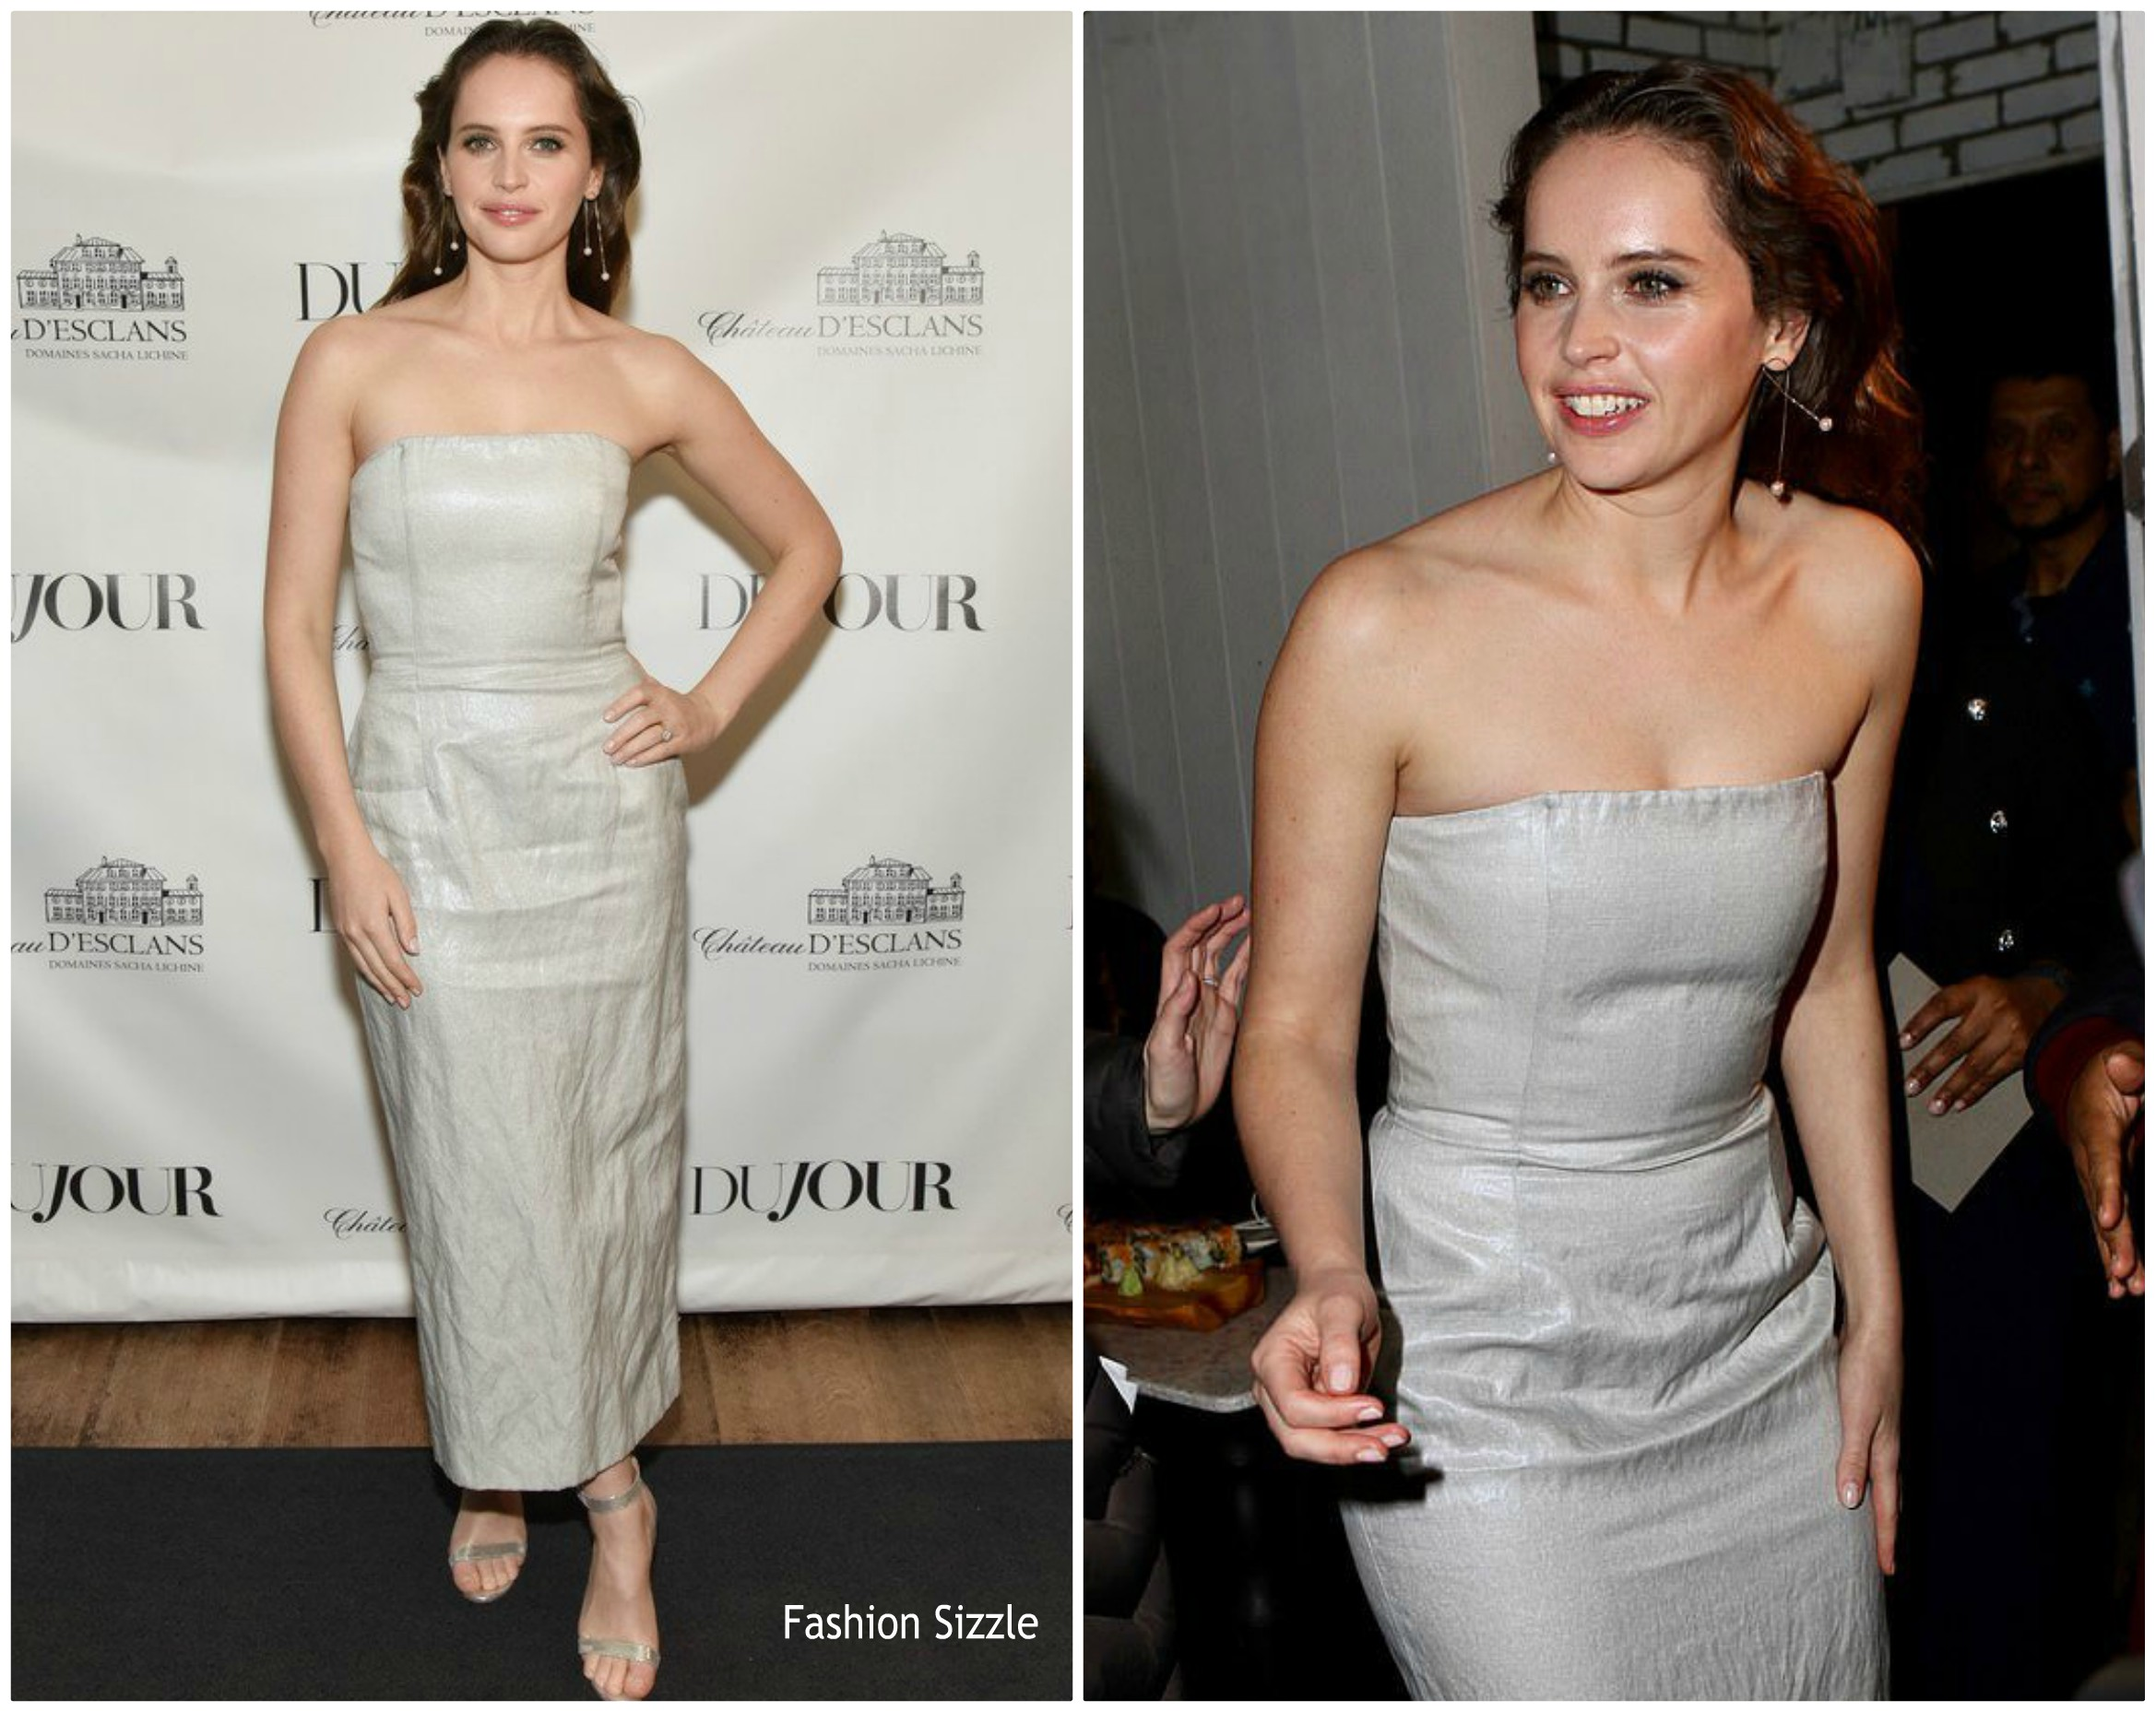 felicity-jones-in-gabriela-hearst-dujour-cover-party